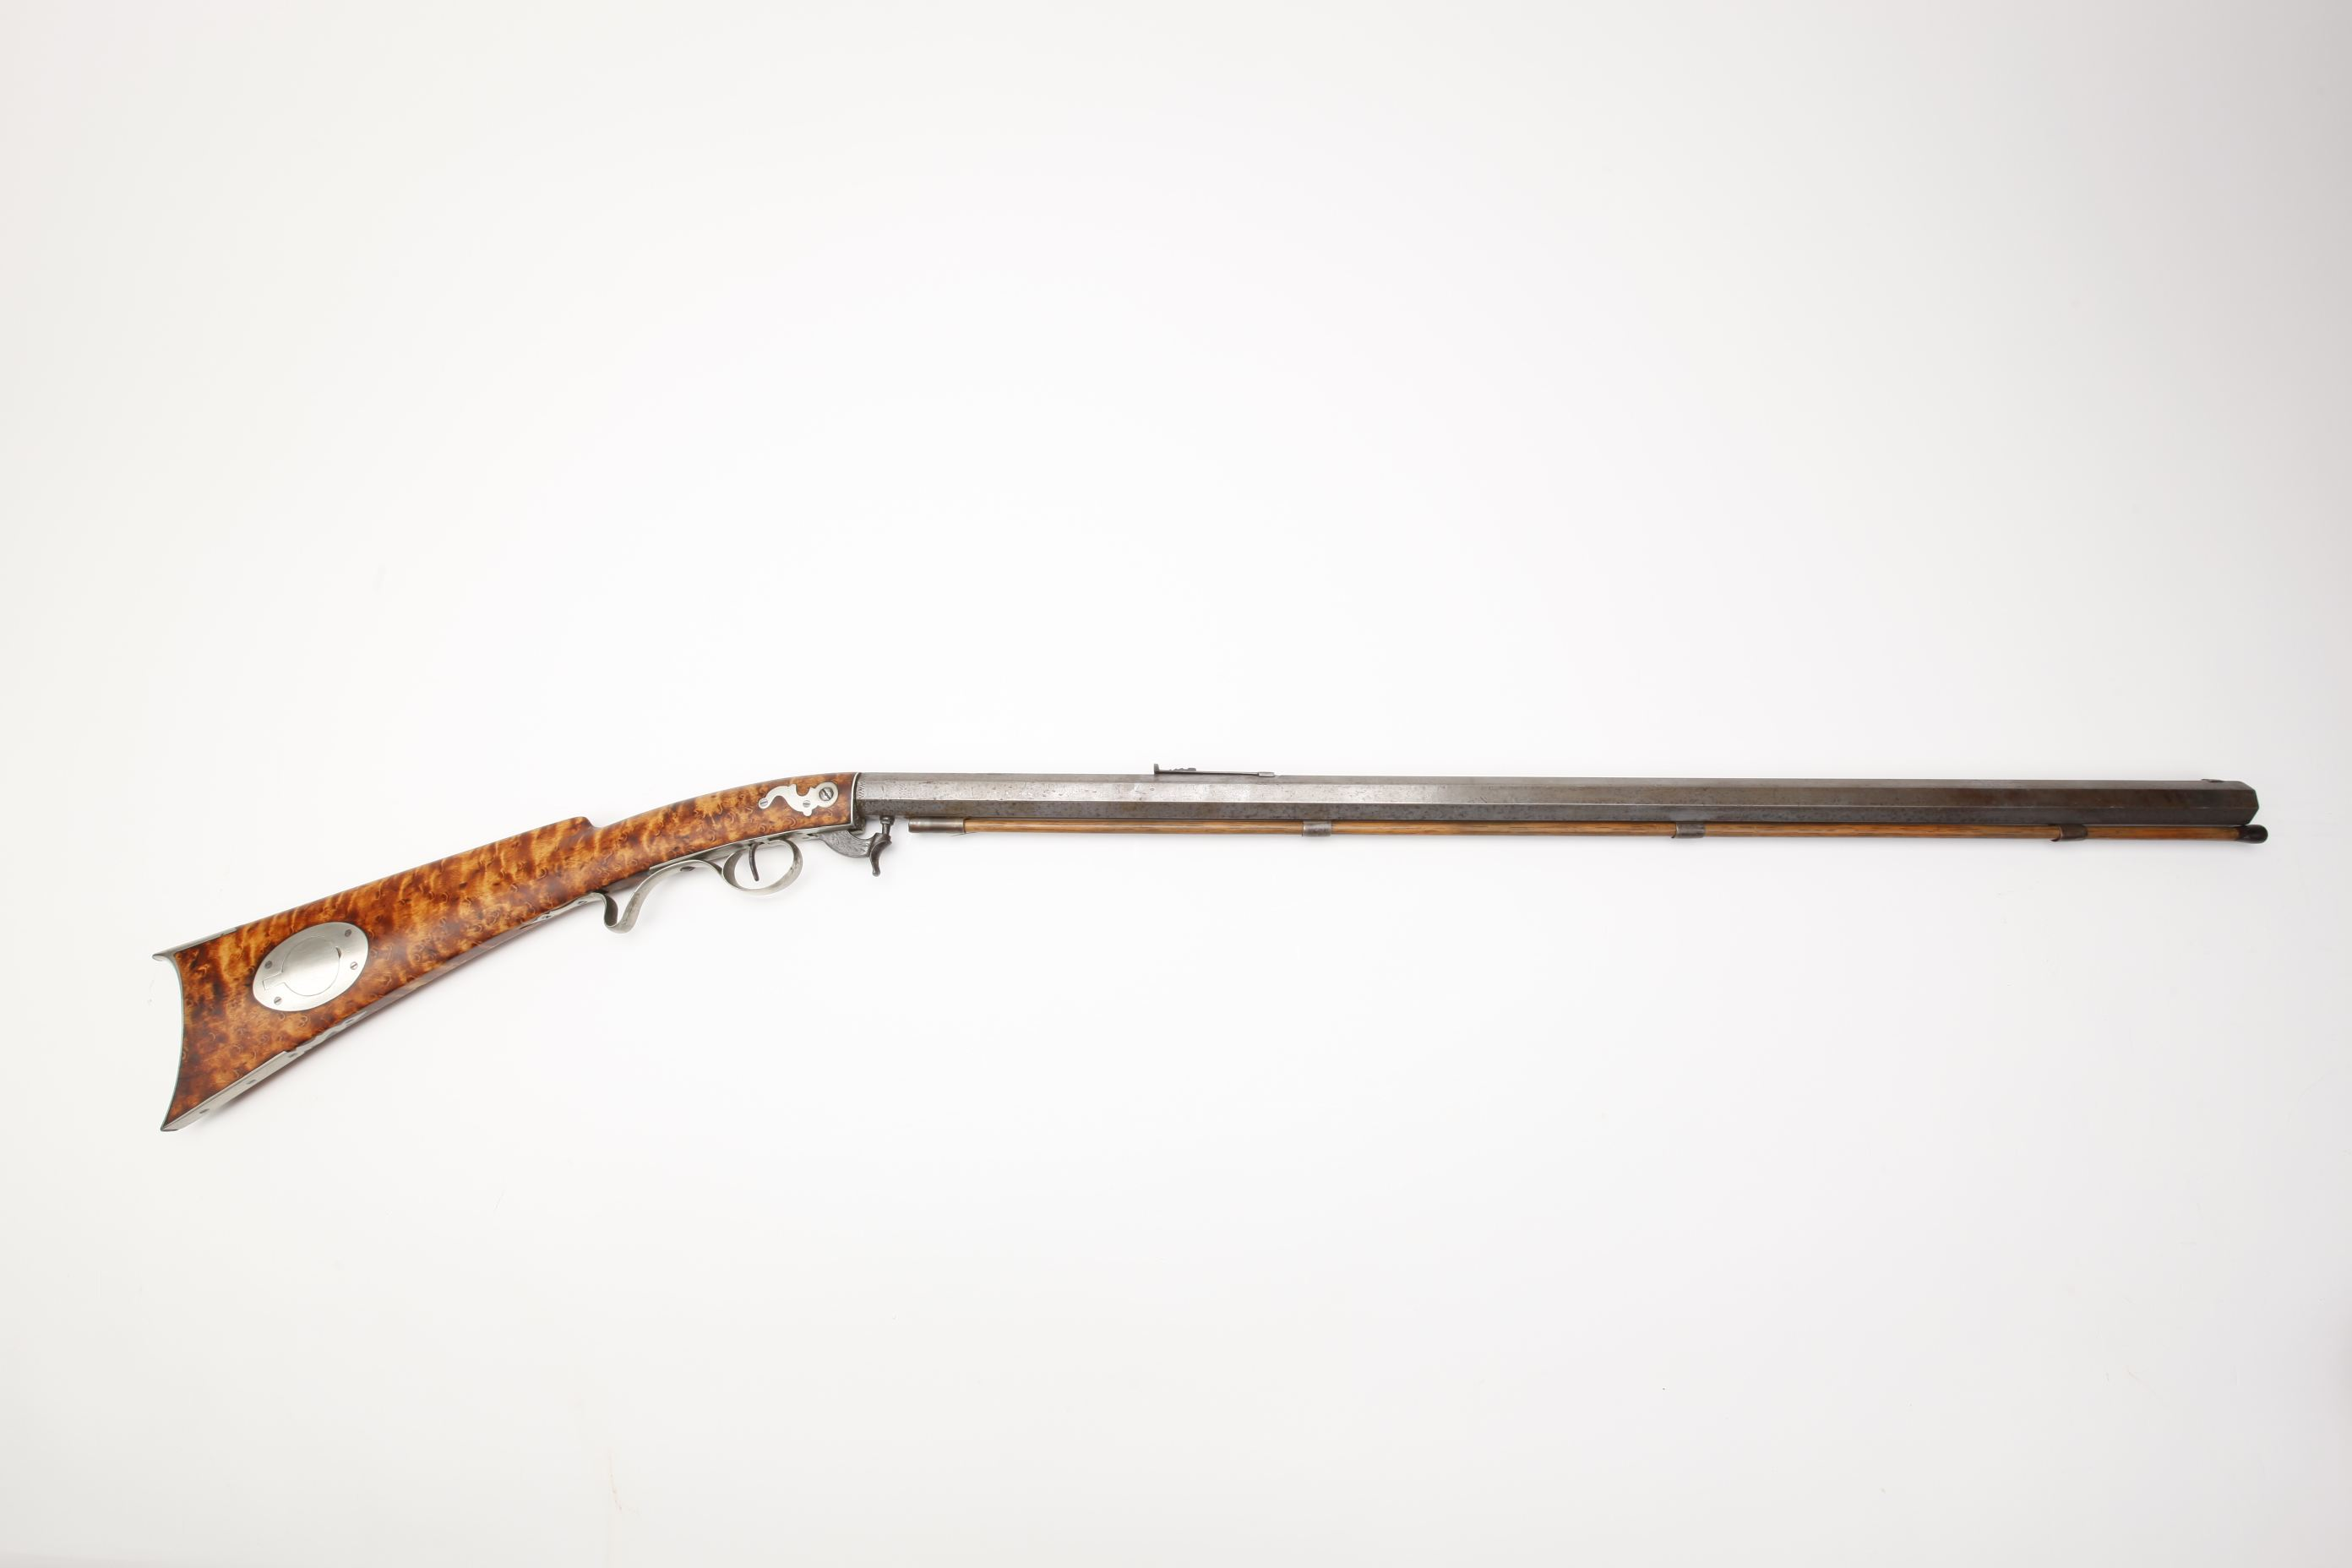 Nicanor Kendall (Windsor, VT) Underhammer Percussion Rifle